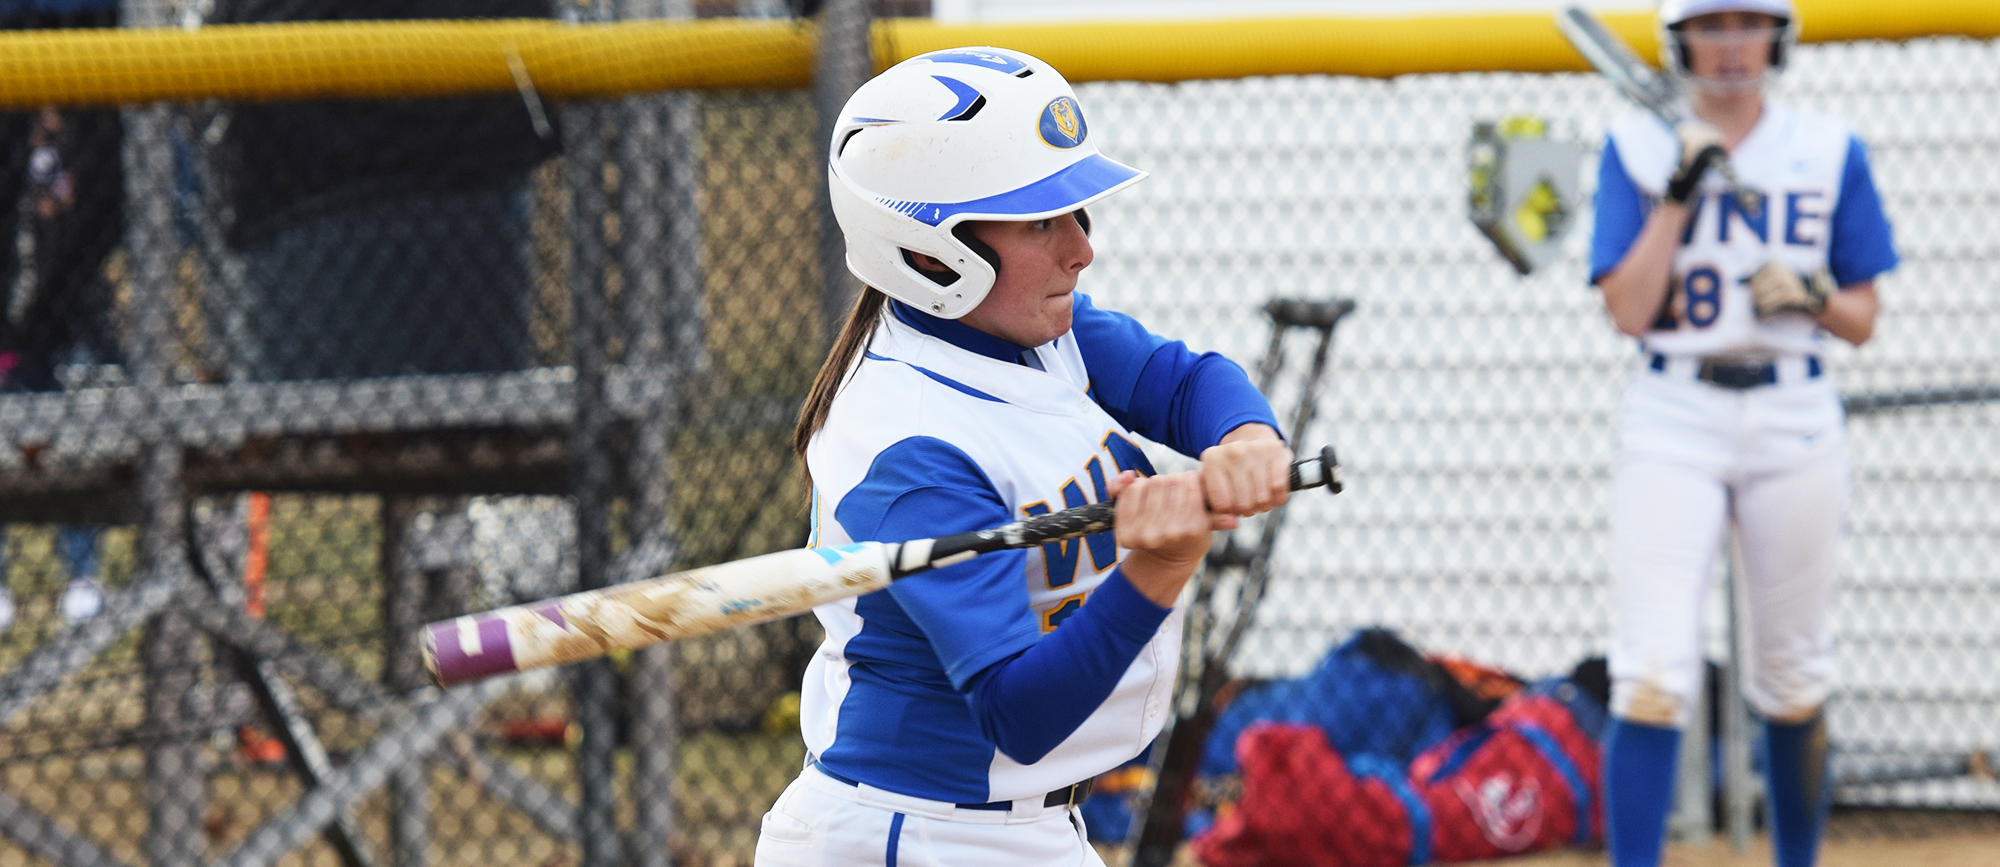 Freshman Allie Buzzeo recorded four hits on Wednesday as WNE split a non-conference doubleheader with Keene State. (Photo by Rachael Margossian)